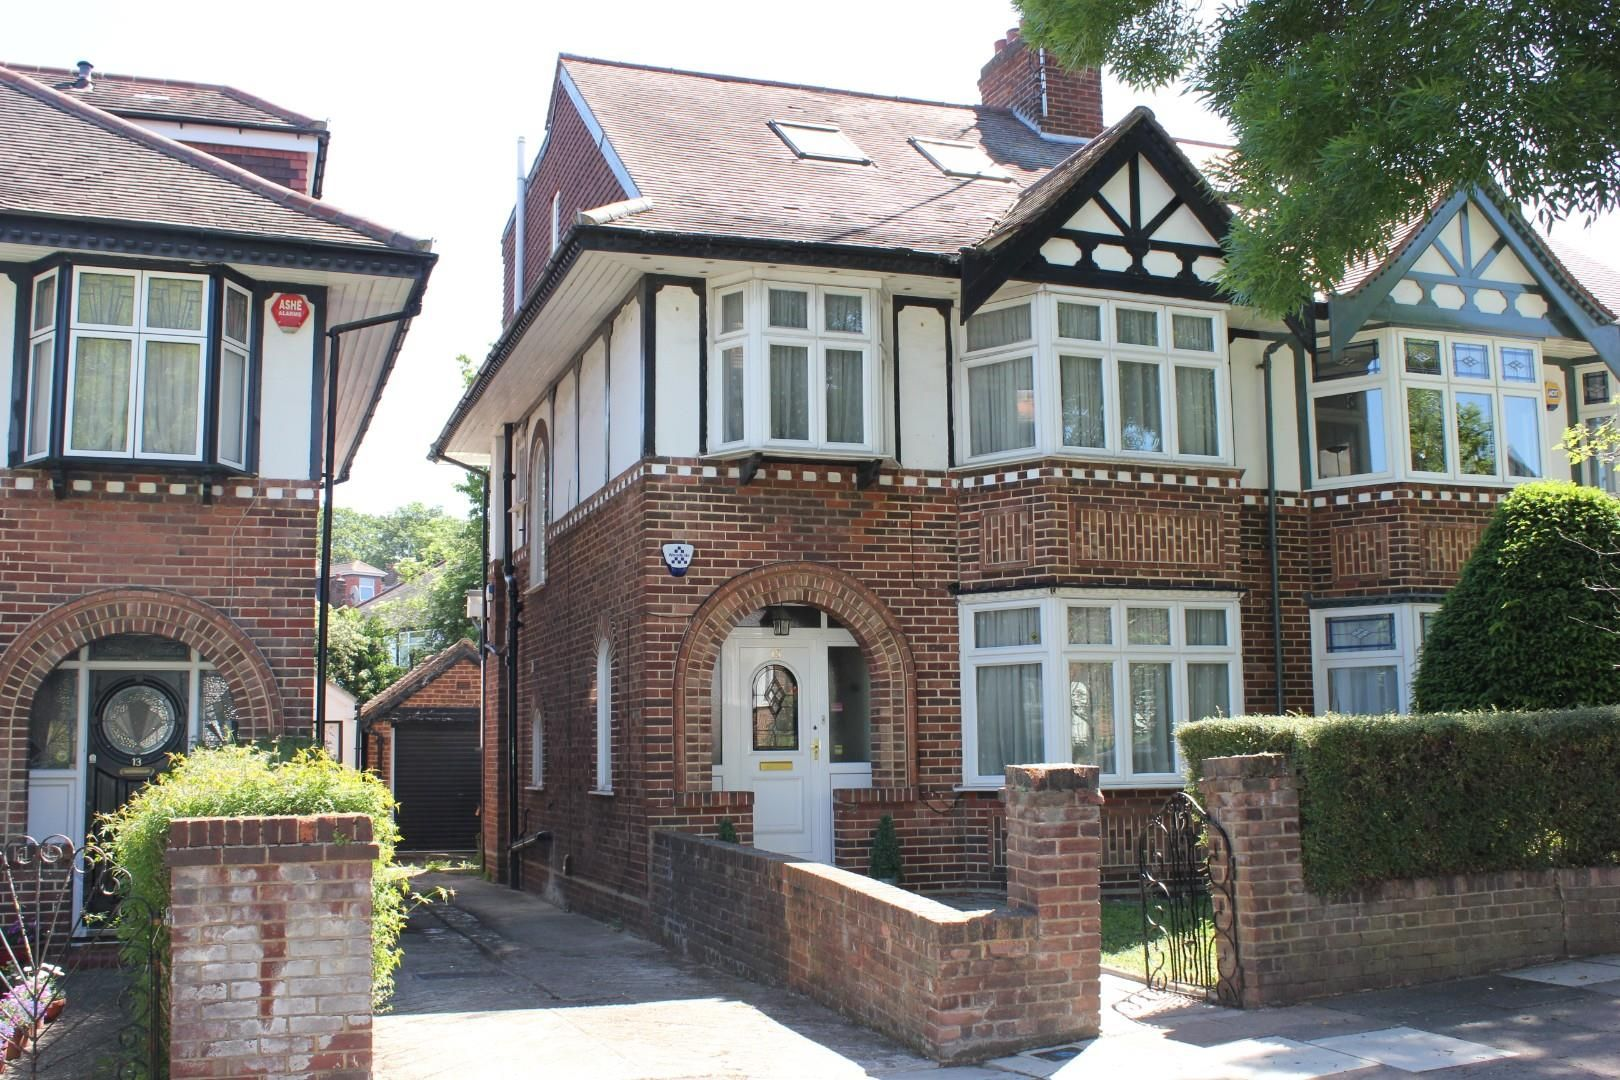 4 bed semi-detached for sale, W51